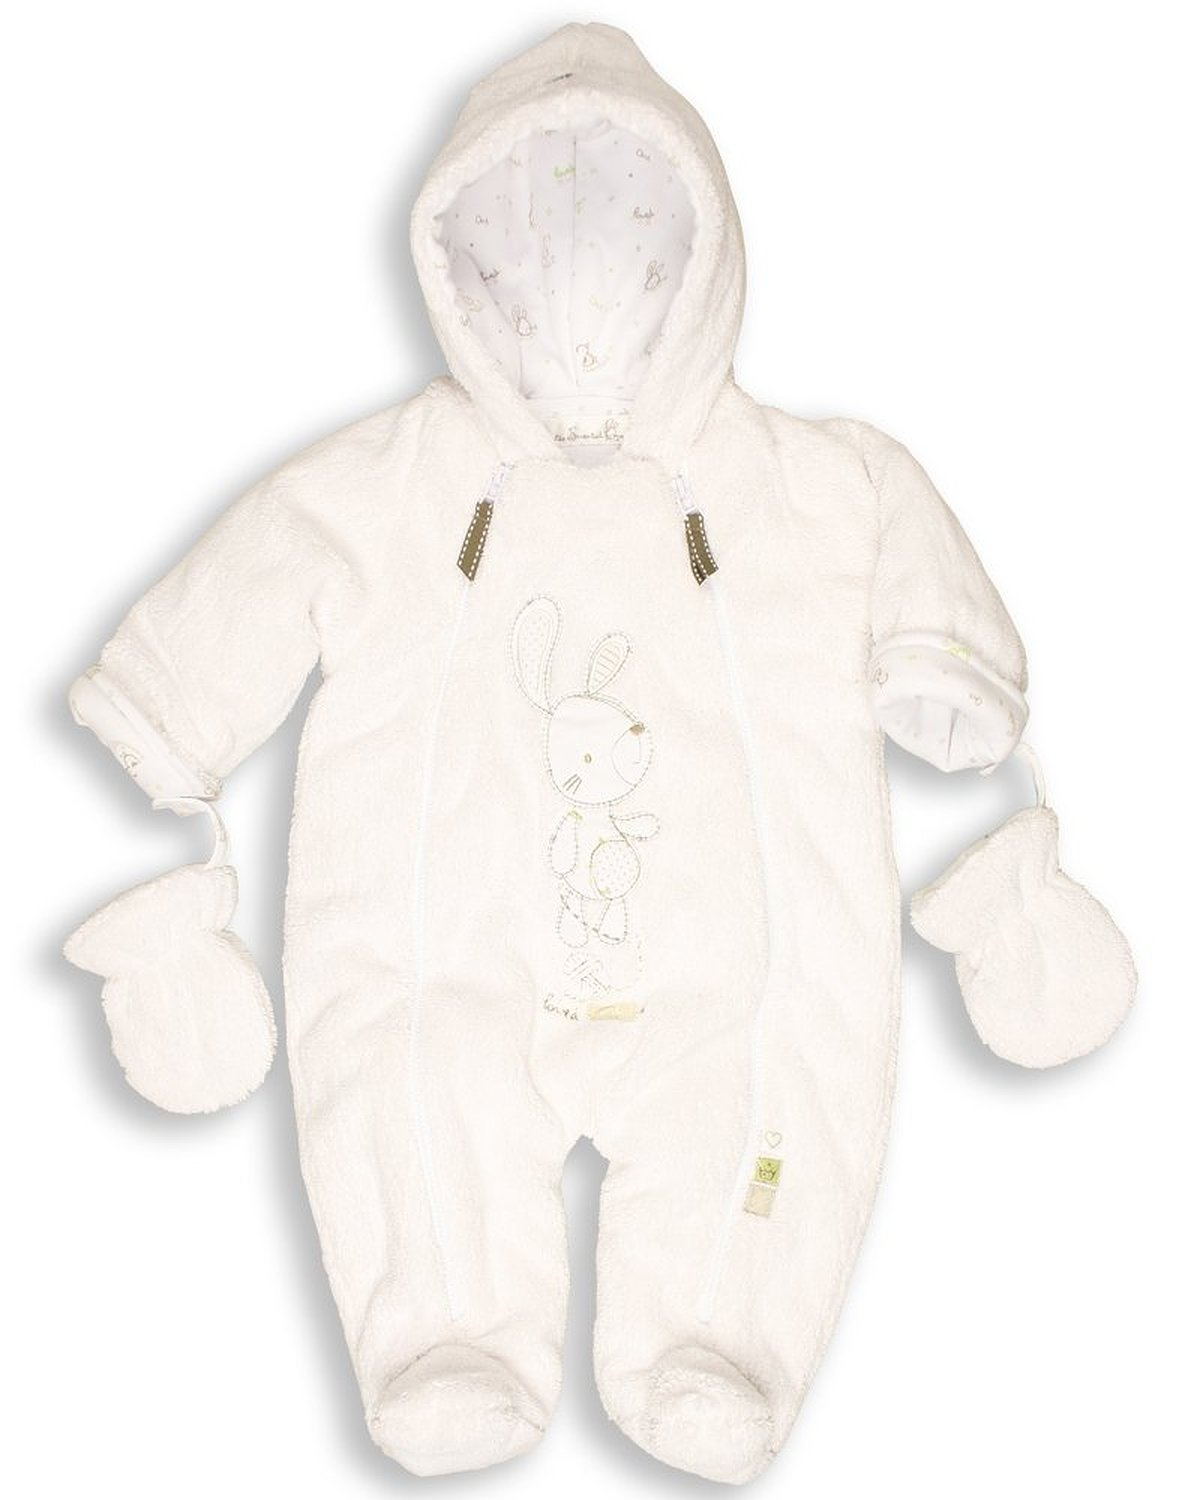 The Essential One Baby Fur Snowsuit Pram 3-6 months White